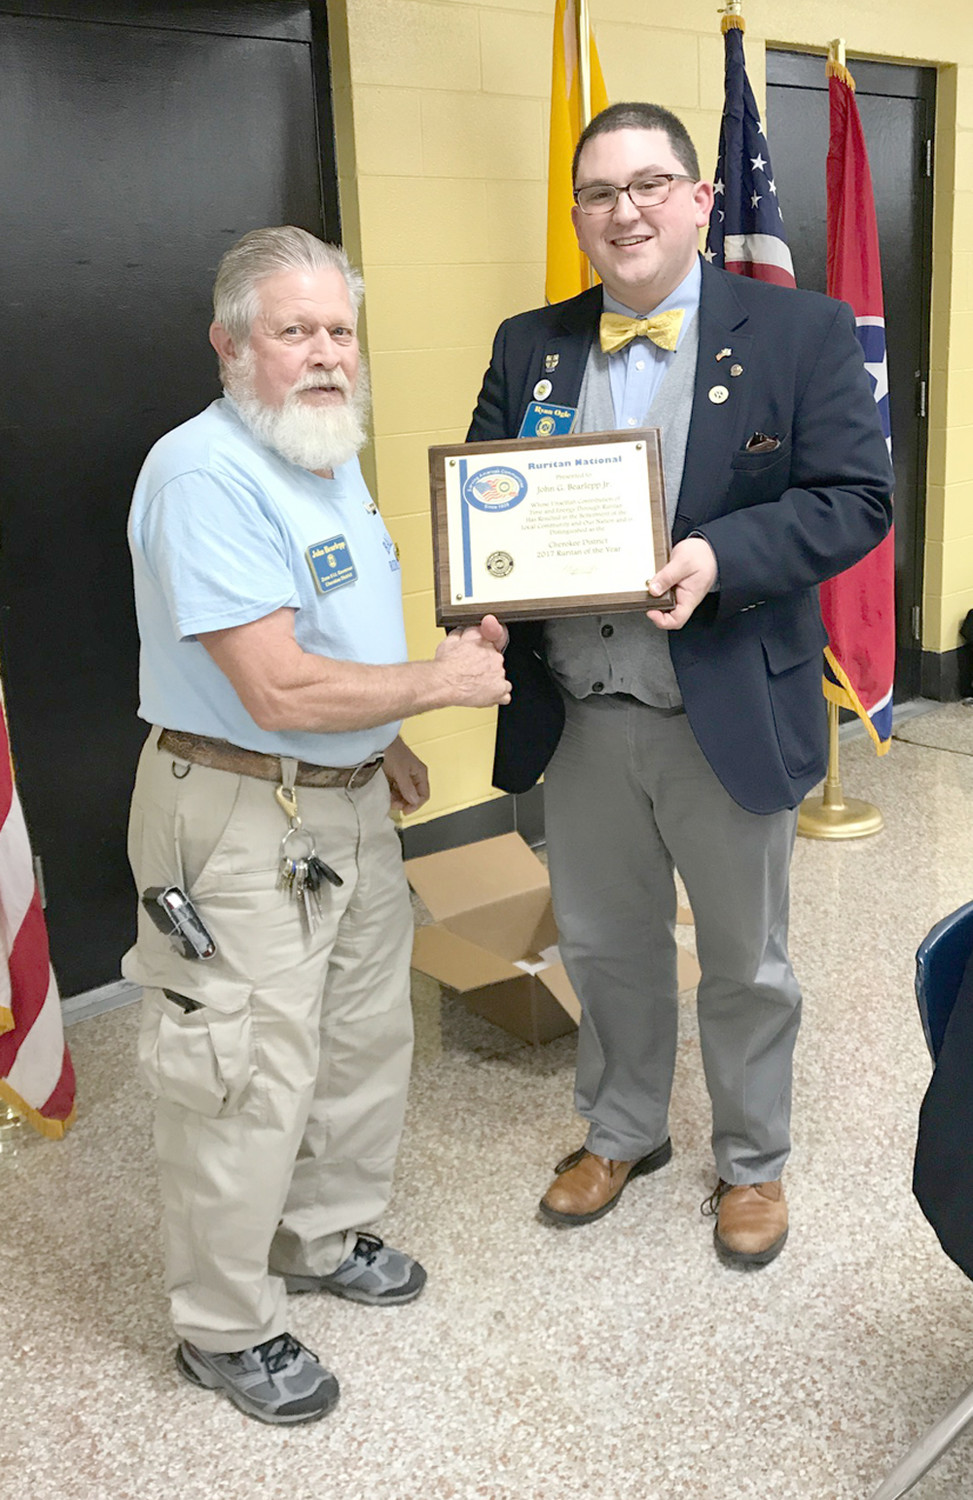 JOHN BARLAPP was named Cherokee District Ruritan of the Year during the recent awards presentations. District Governor Ryan Ogle made the presentation.